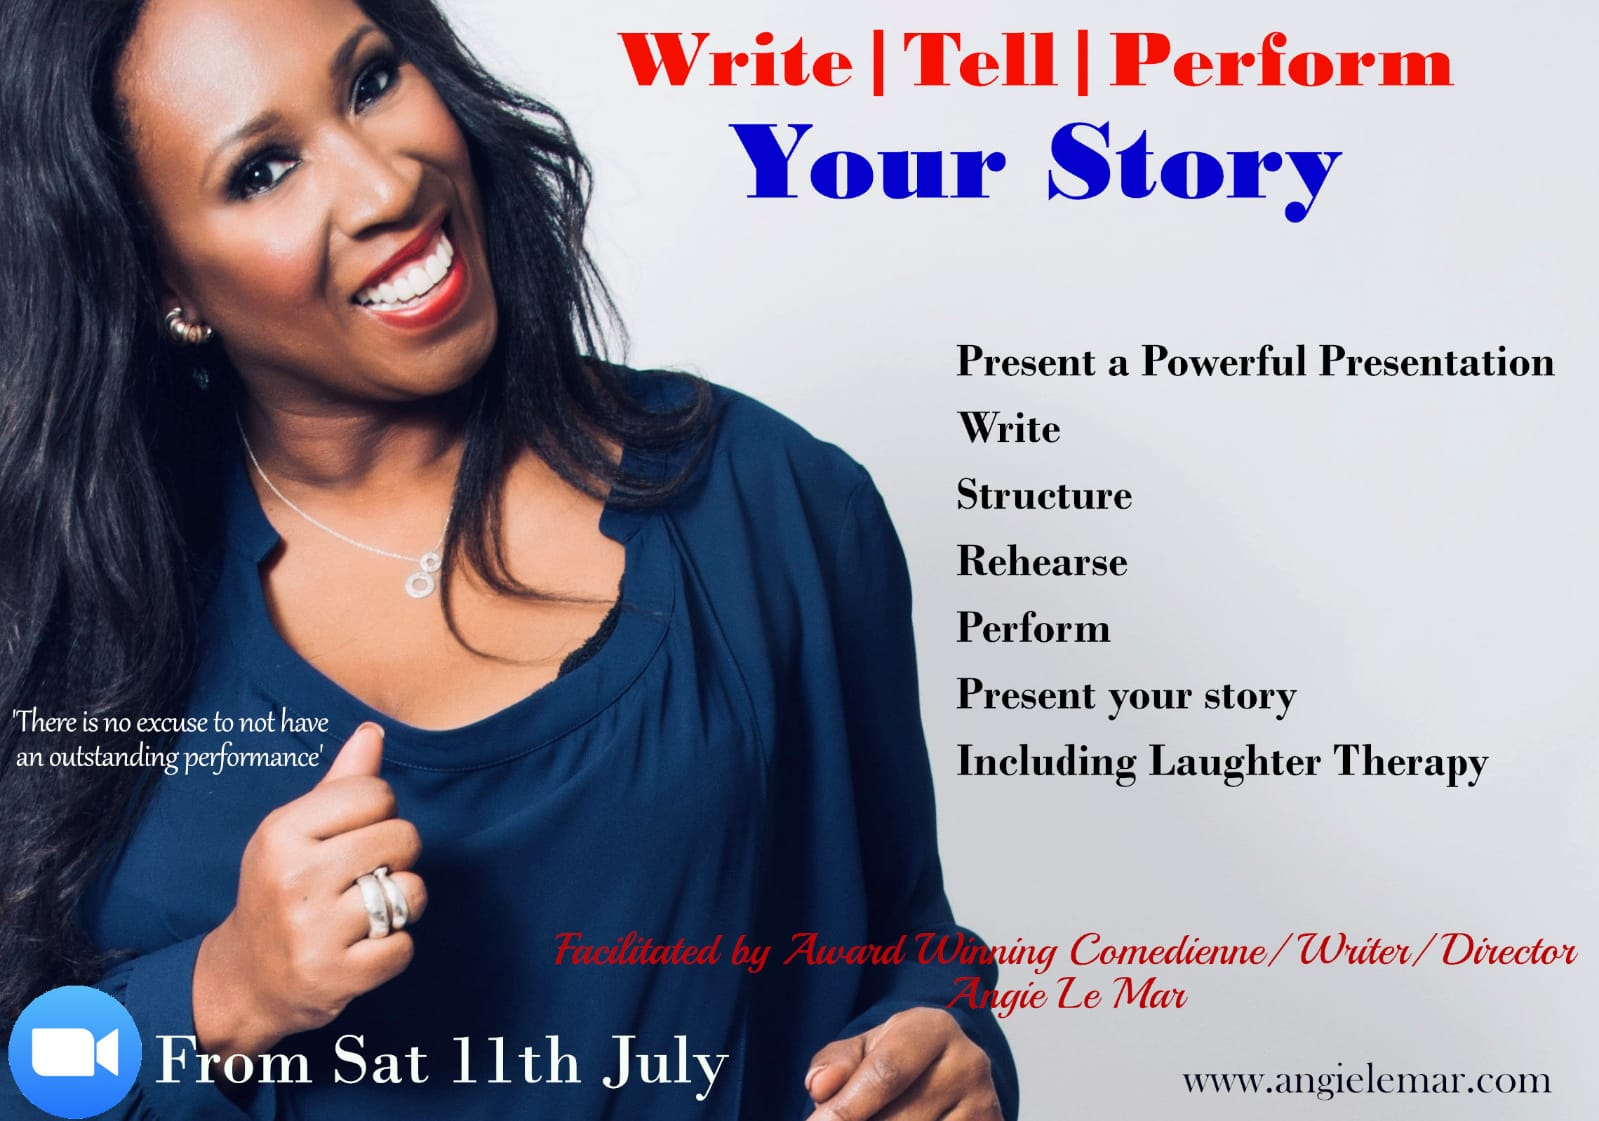 Write/Tell/Perform Your Story